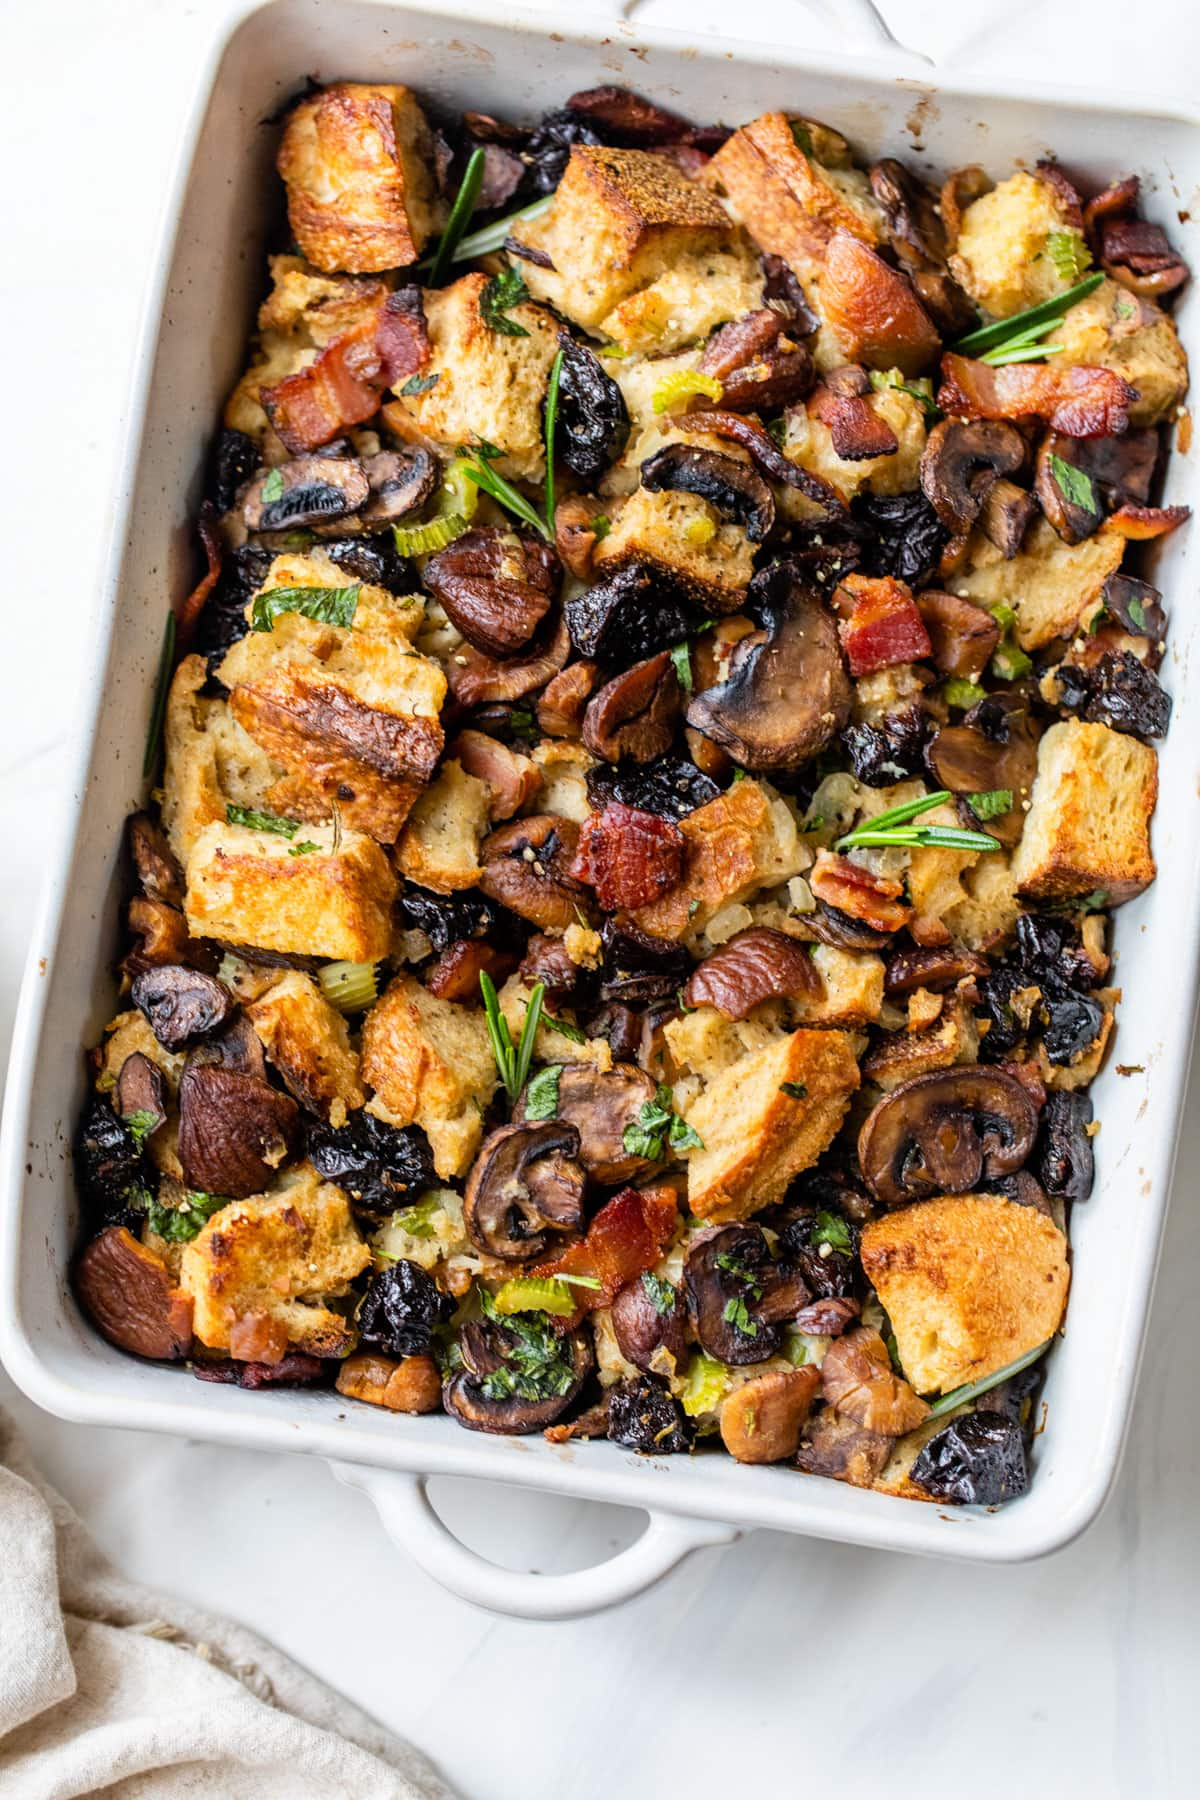 Bacon Mushroom Stuffing with Rosemary. The perfect Thanksgiving or holiday side dish to make your meal truly special